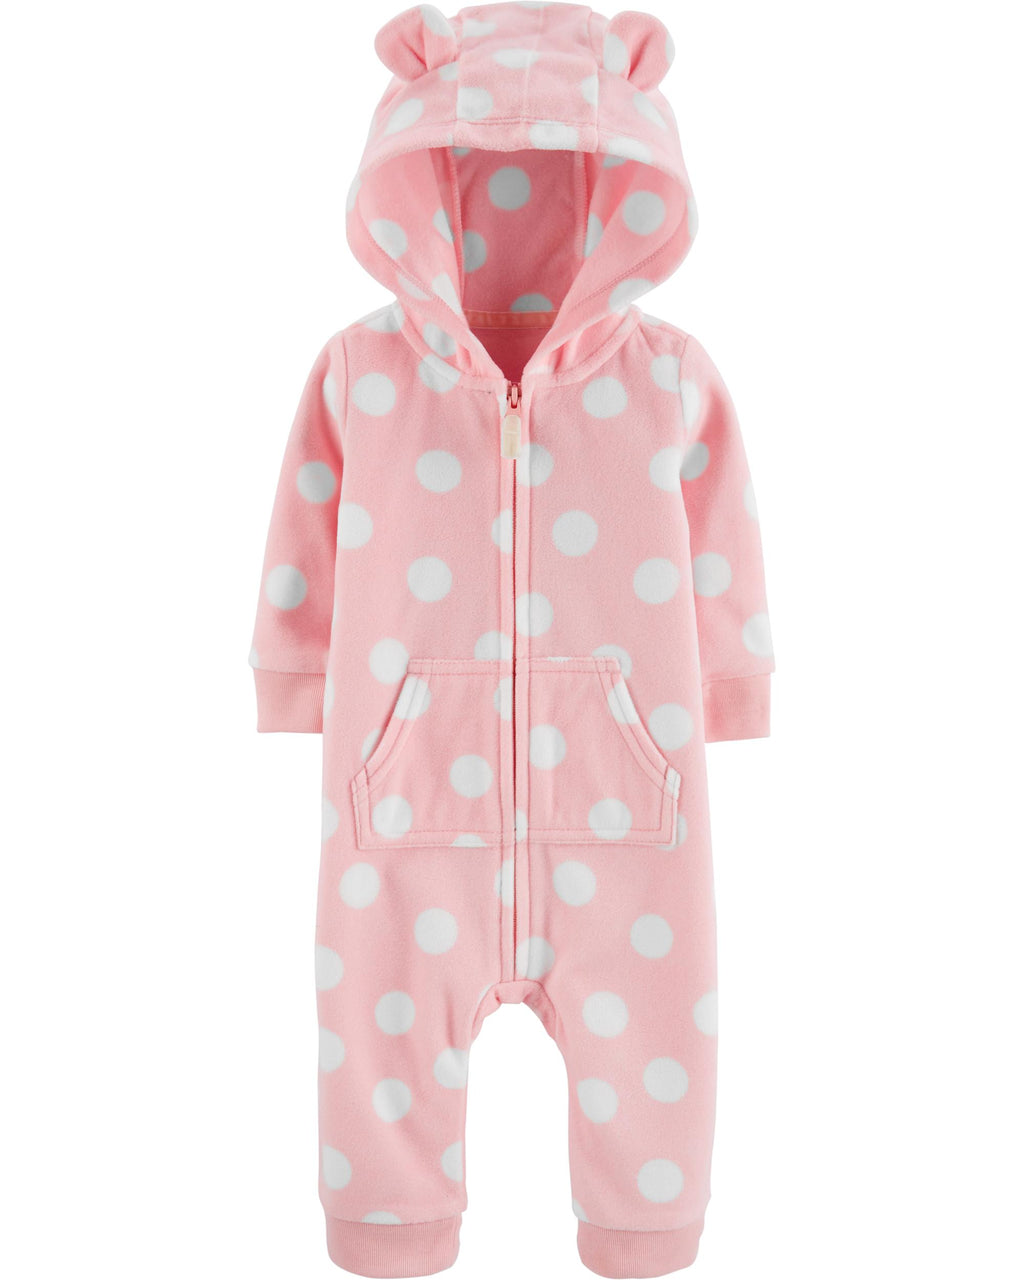 Enterito CARTERS Hooded Polka Dot Jumpsuit